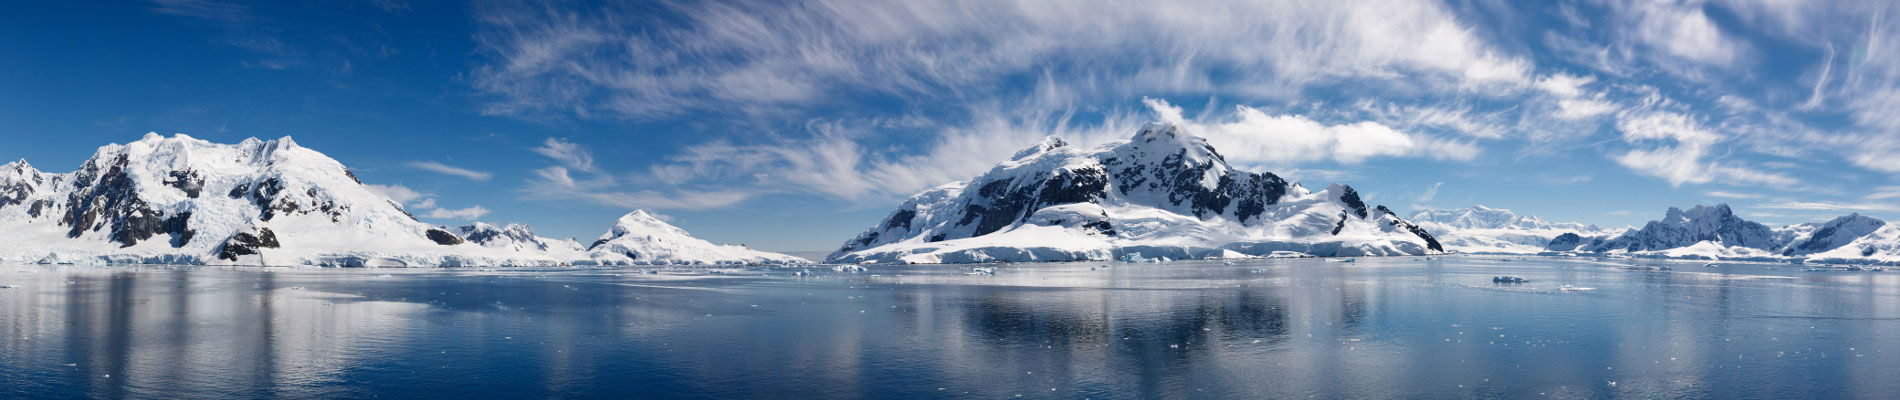 antarctique-iceberg-nature-st